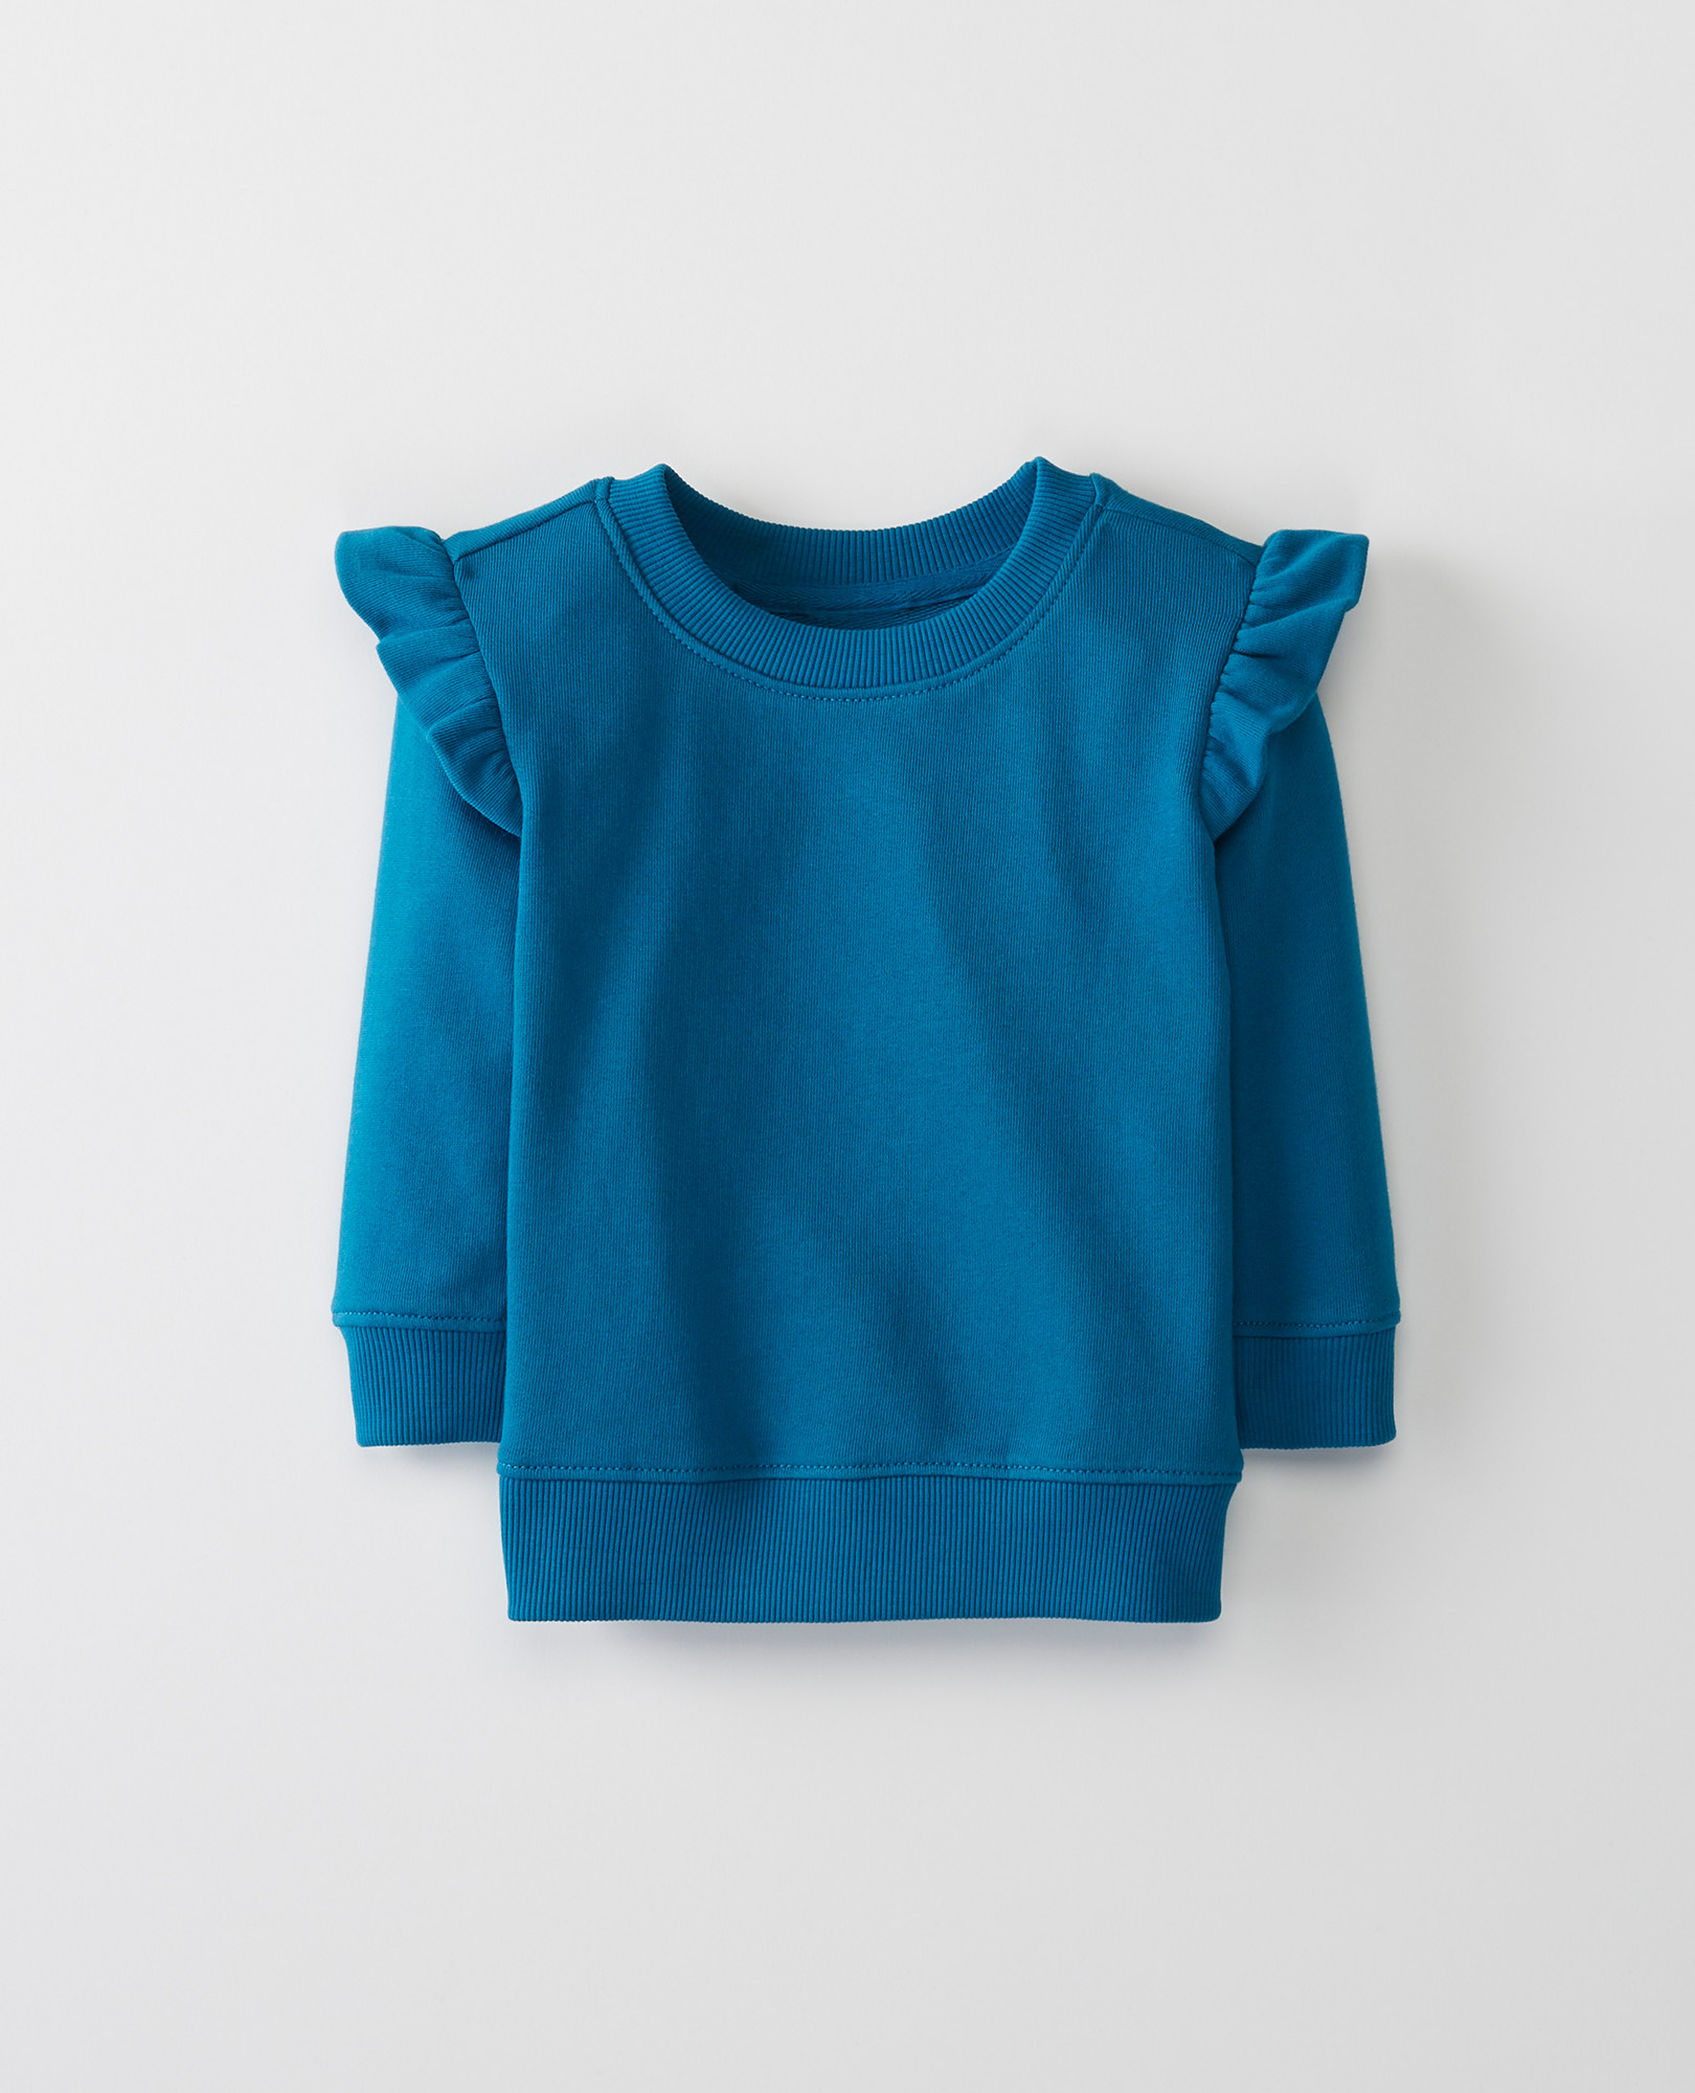 Hanna Andersson kids sale: Baby layette items